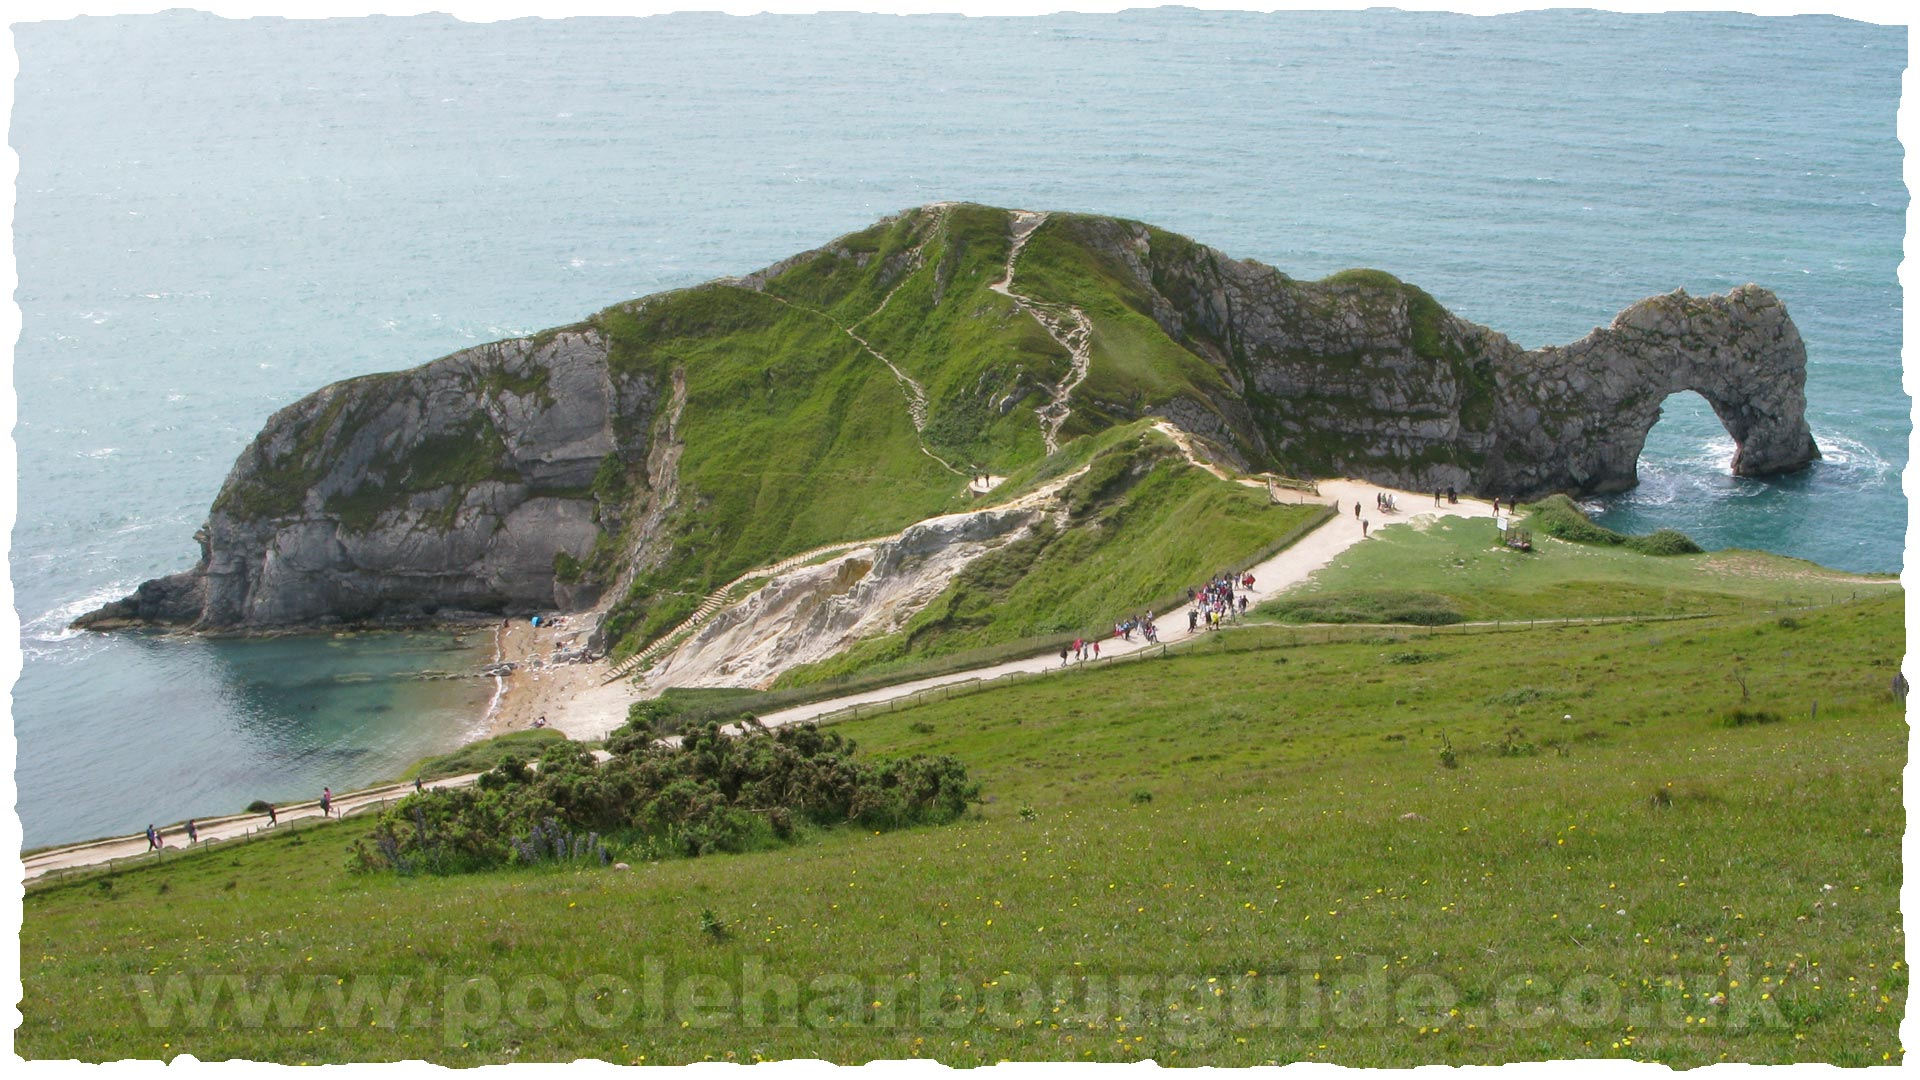 Durdle Door Jurassic Icon Dorset England HD desktop wallpaper 1920×1080 : dulder door - pezcame.com